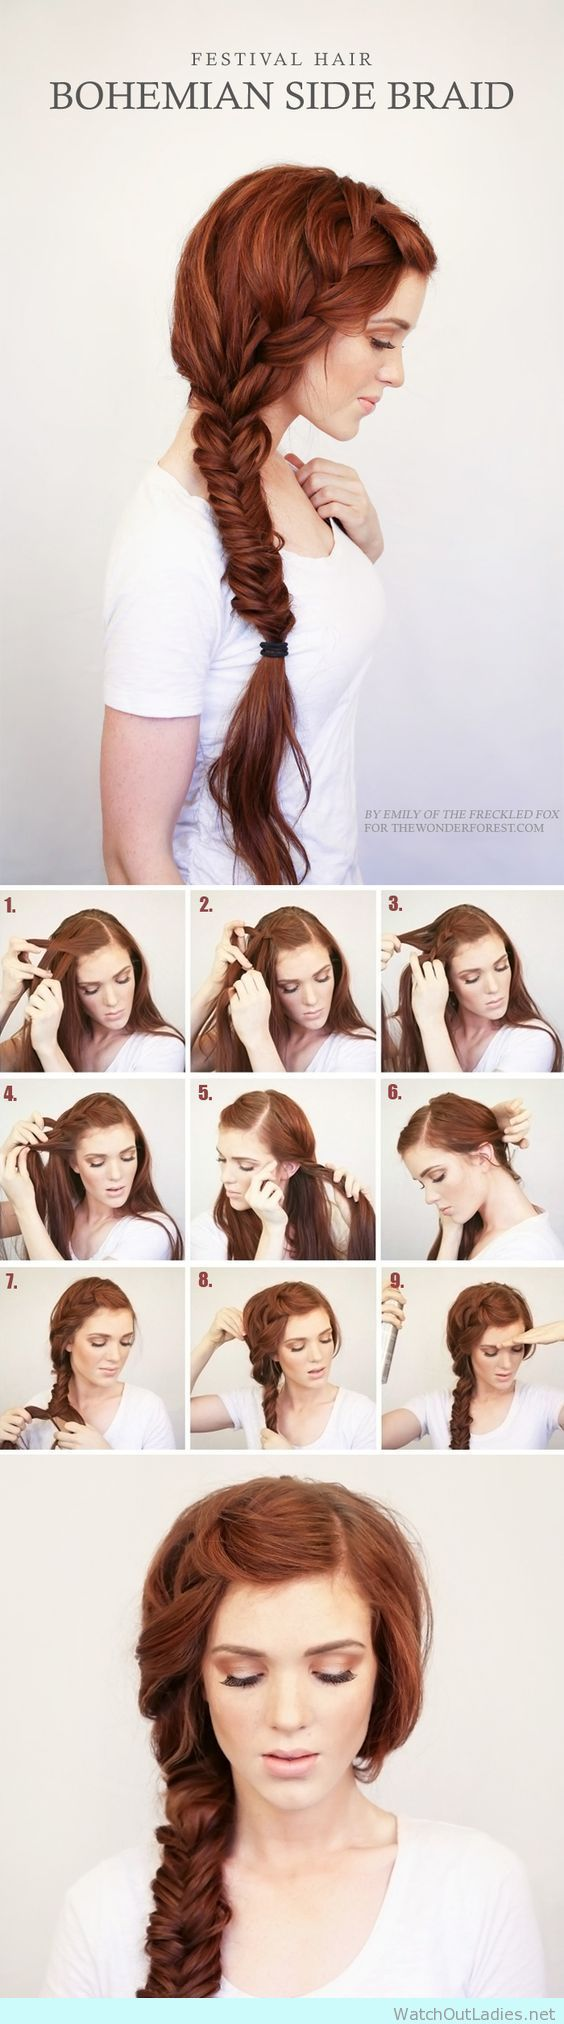 Bohemian side braided hairstyle for redhairs